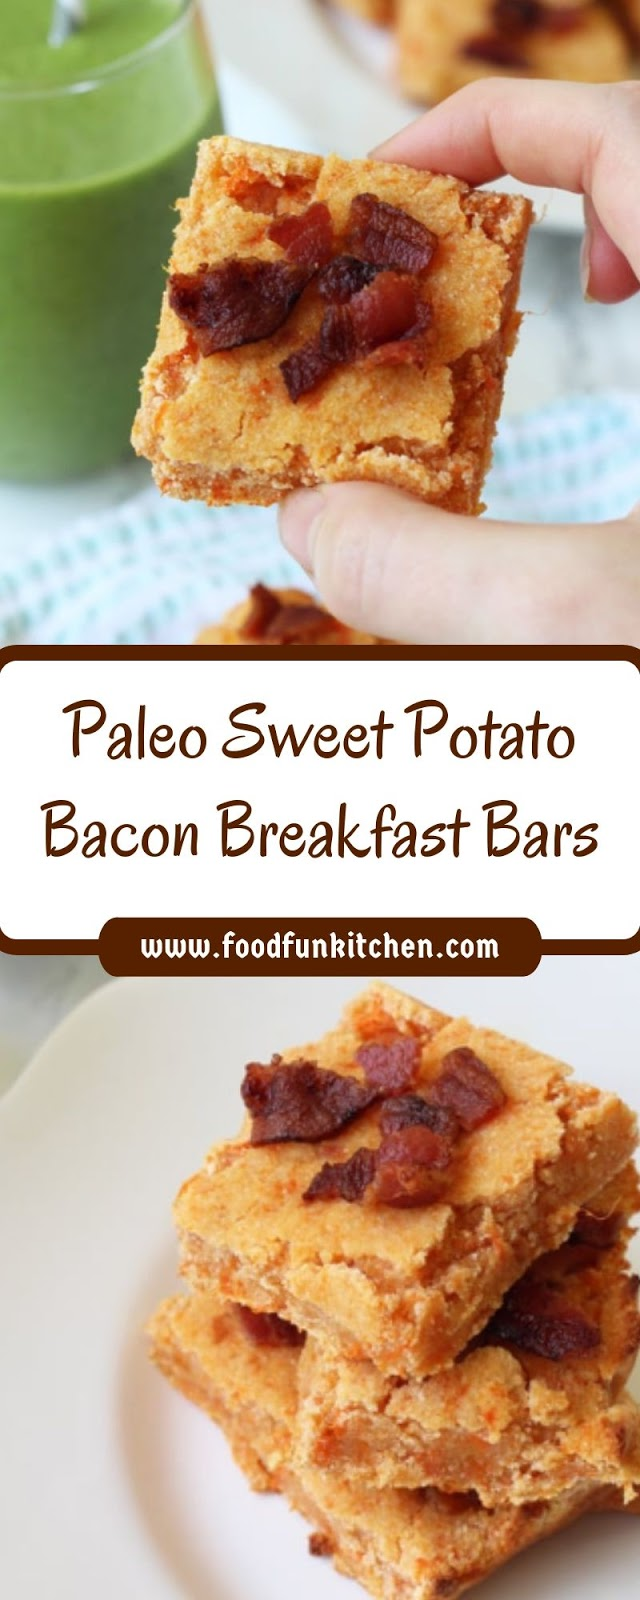 PALEO SWEET POTATO BACON BREAKFAST BARS